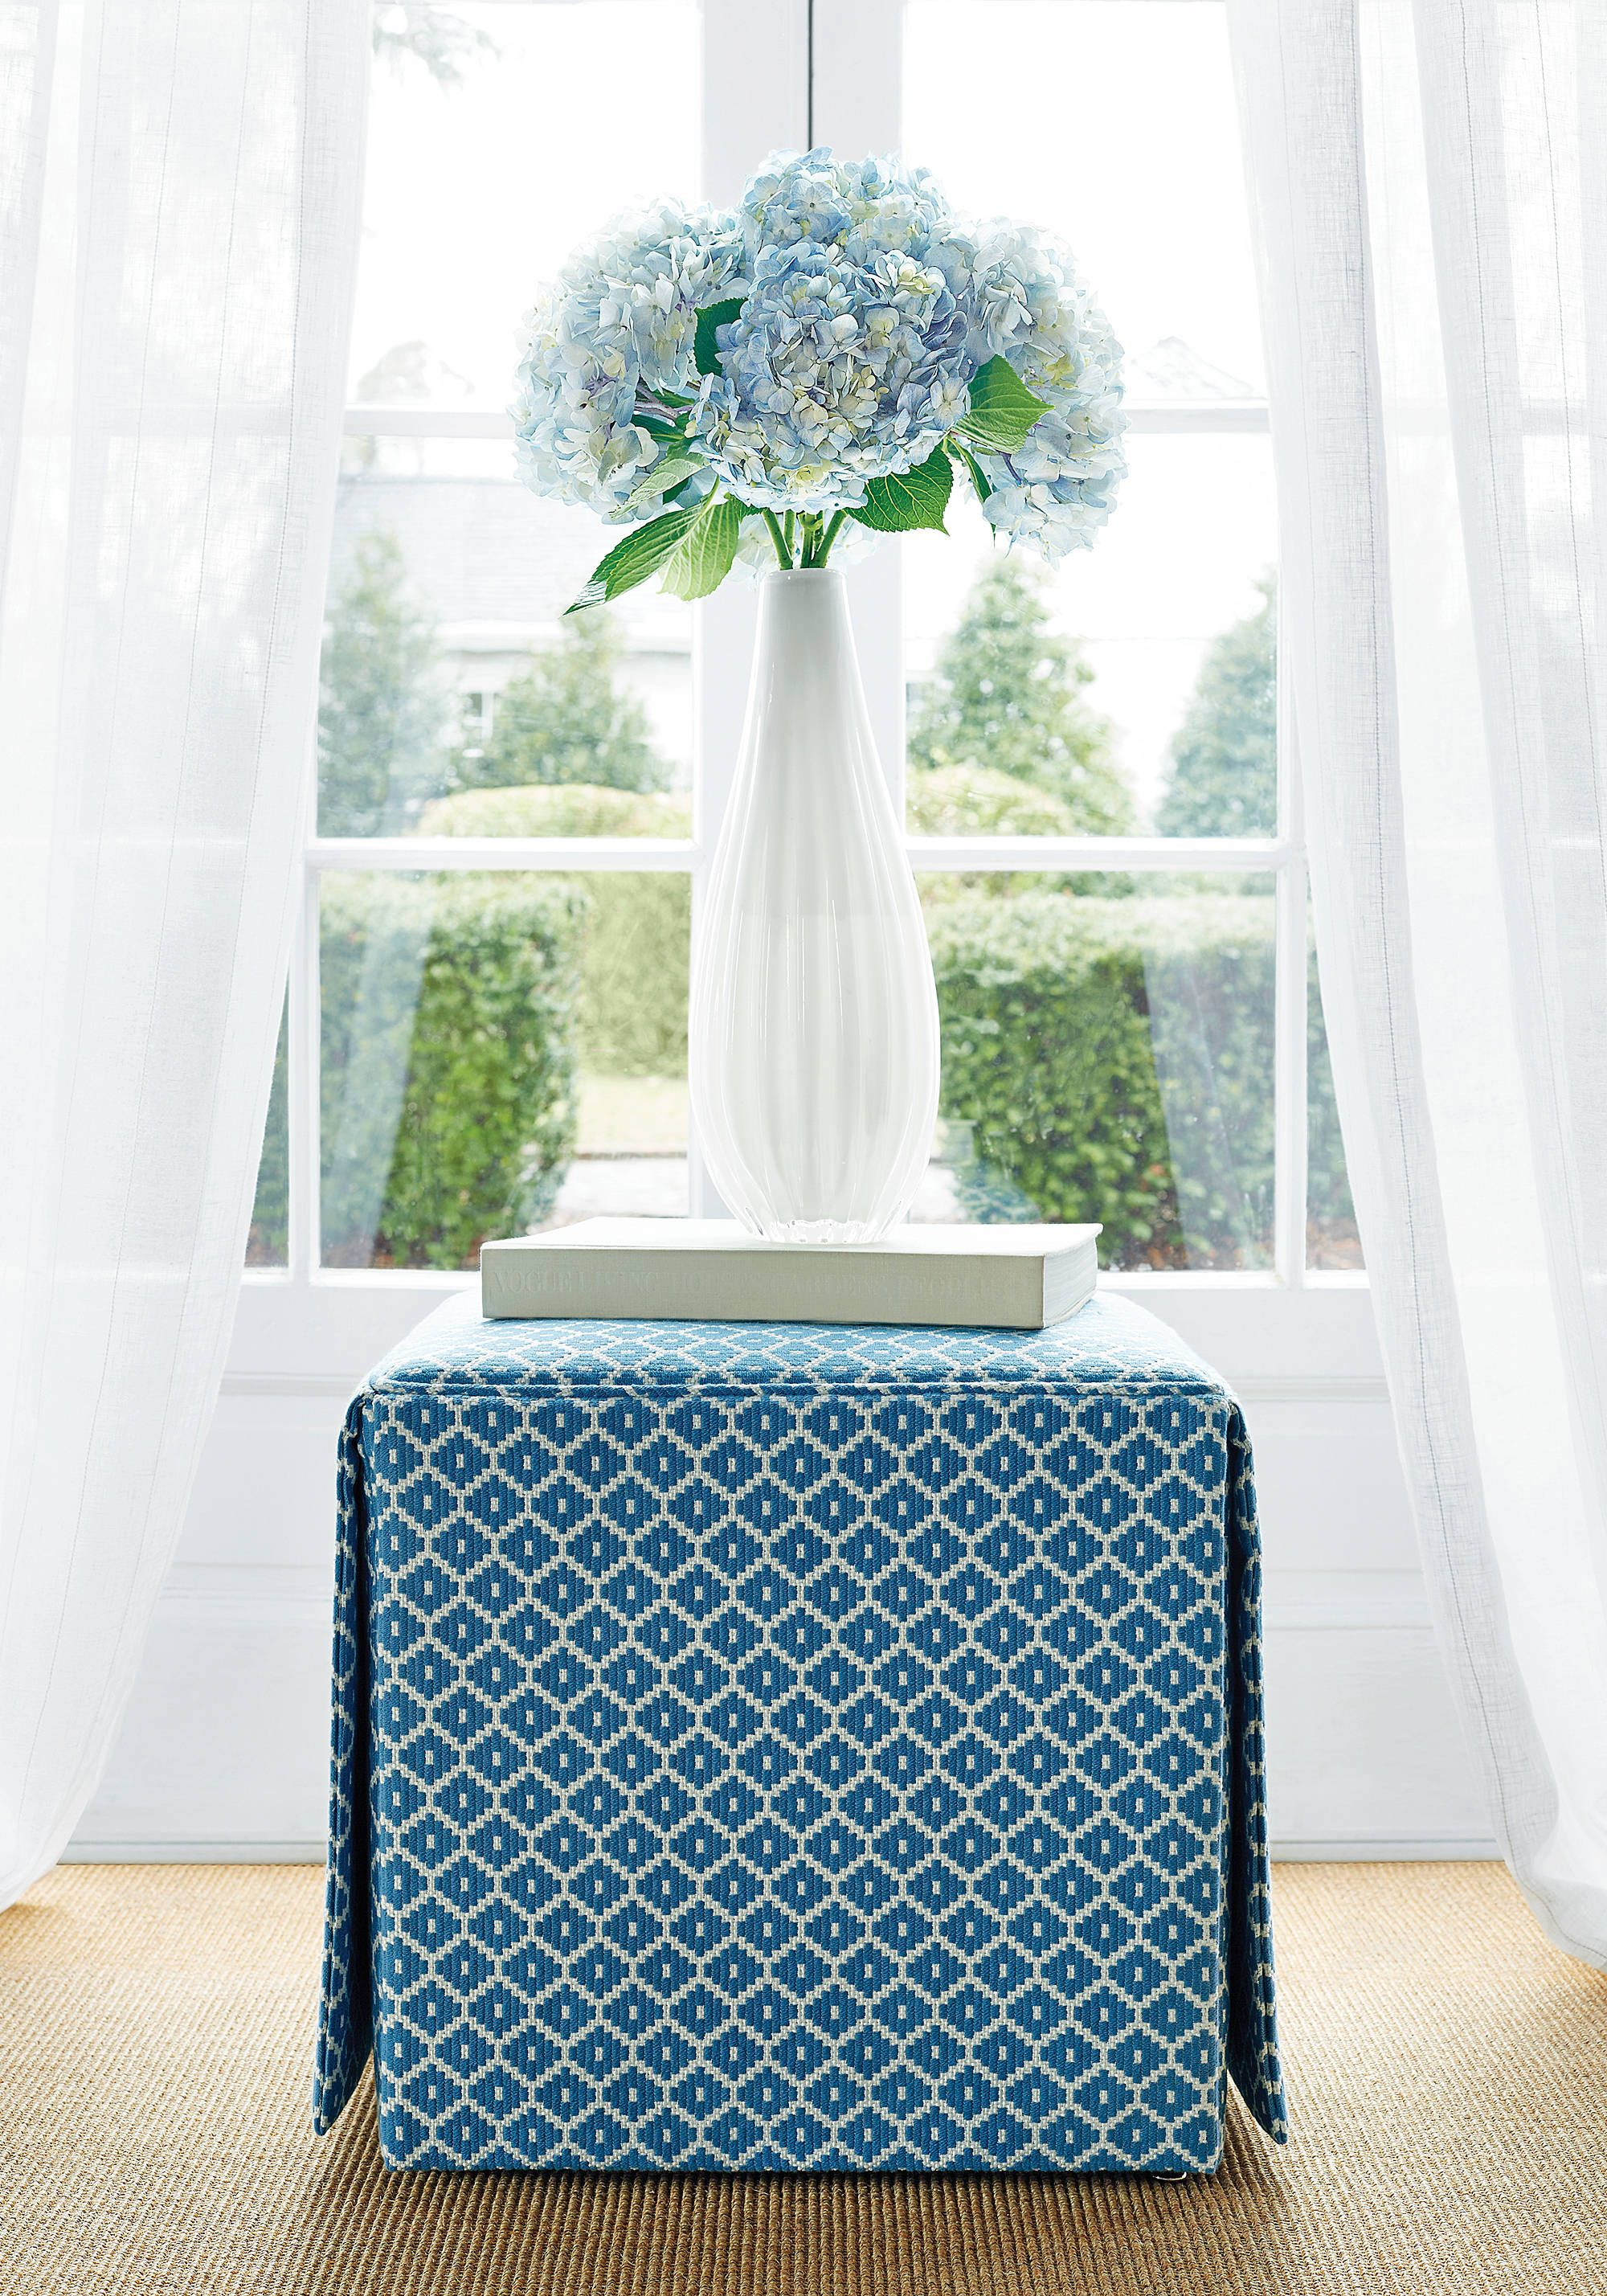 Fair and Square Ottoman from Thibaut Fine Furniture in Mayan